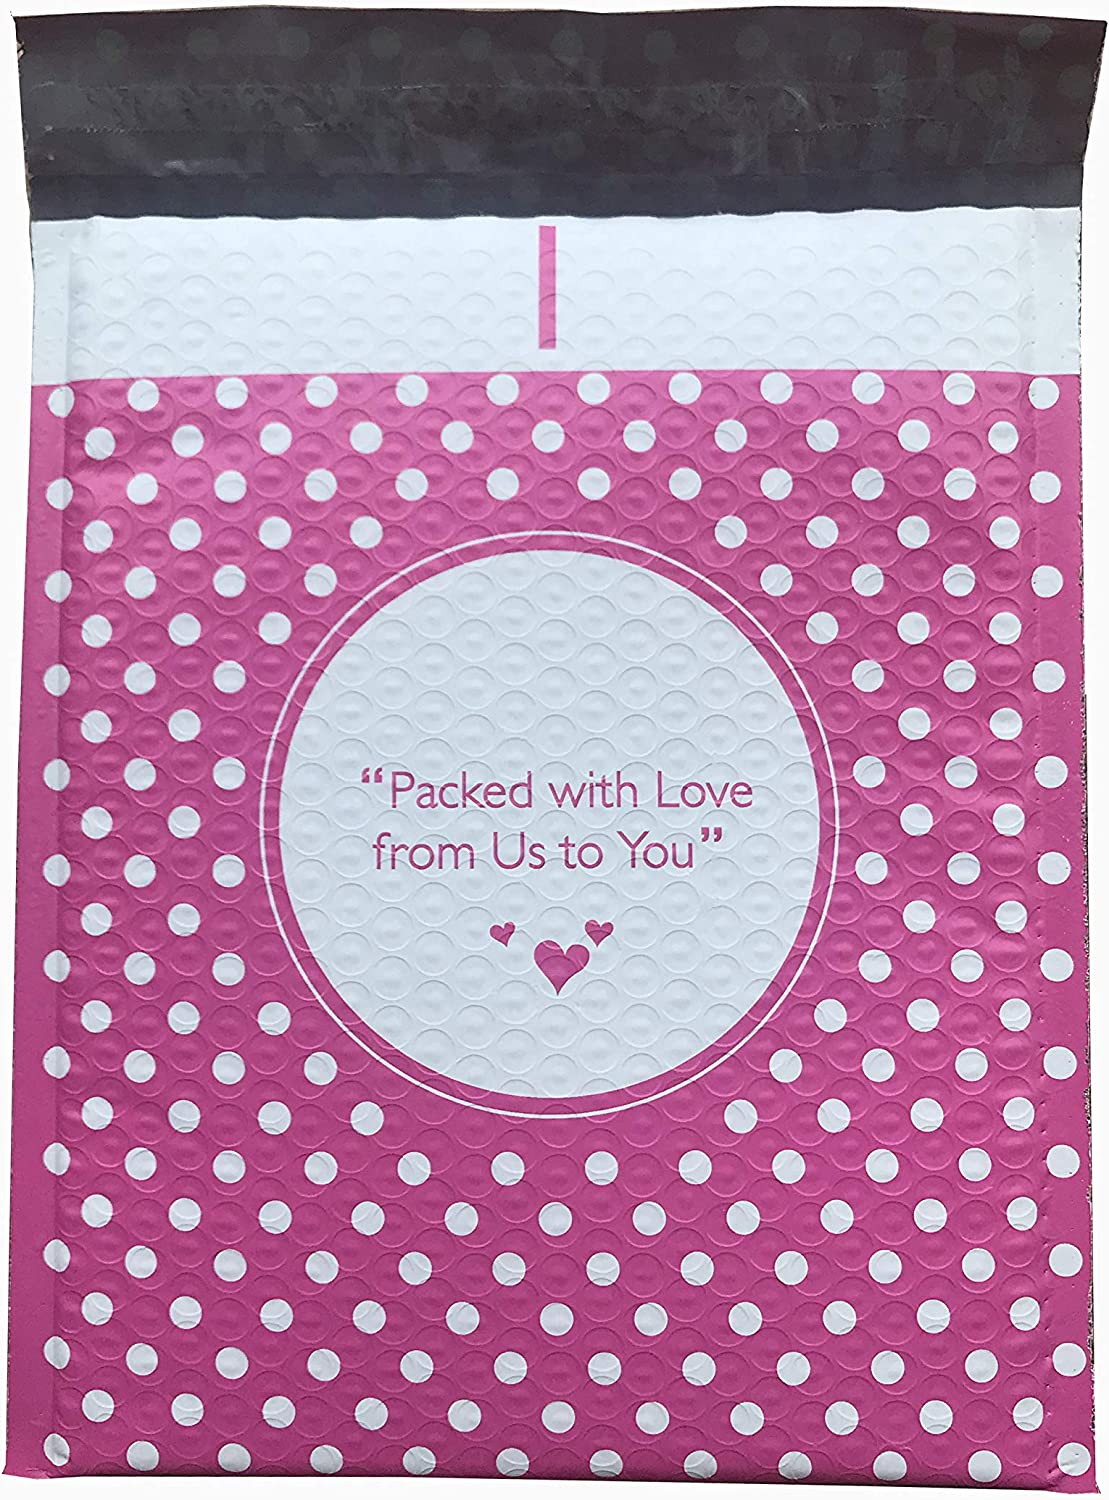 Pink Dot Poly Bubble Mailers 50 8.5x11 Packed with Love from Us to You